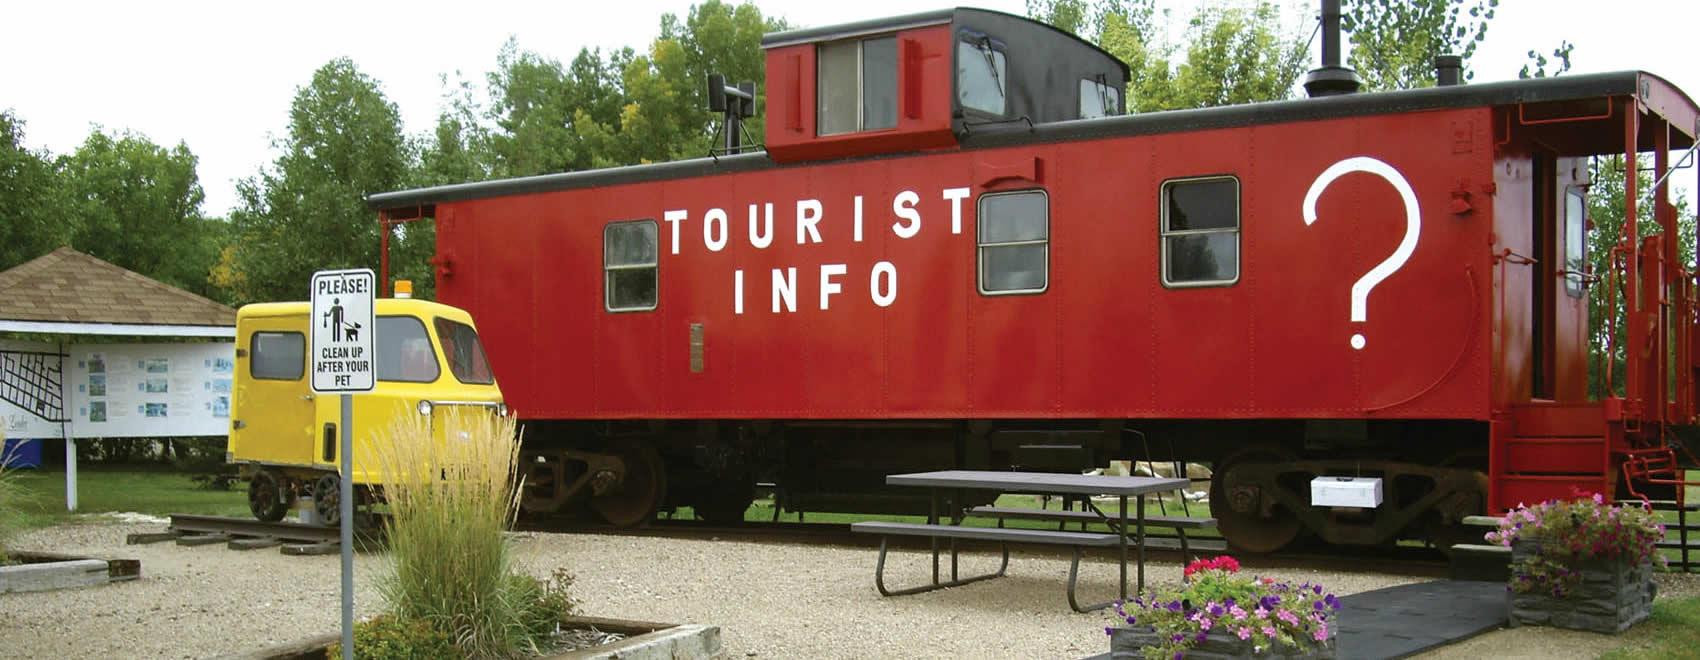 Leader Tourist Information Caboose